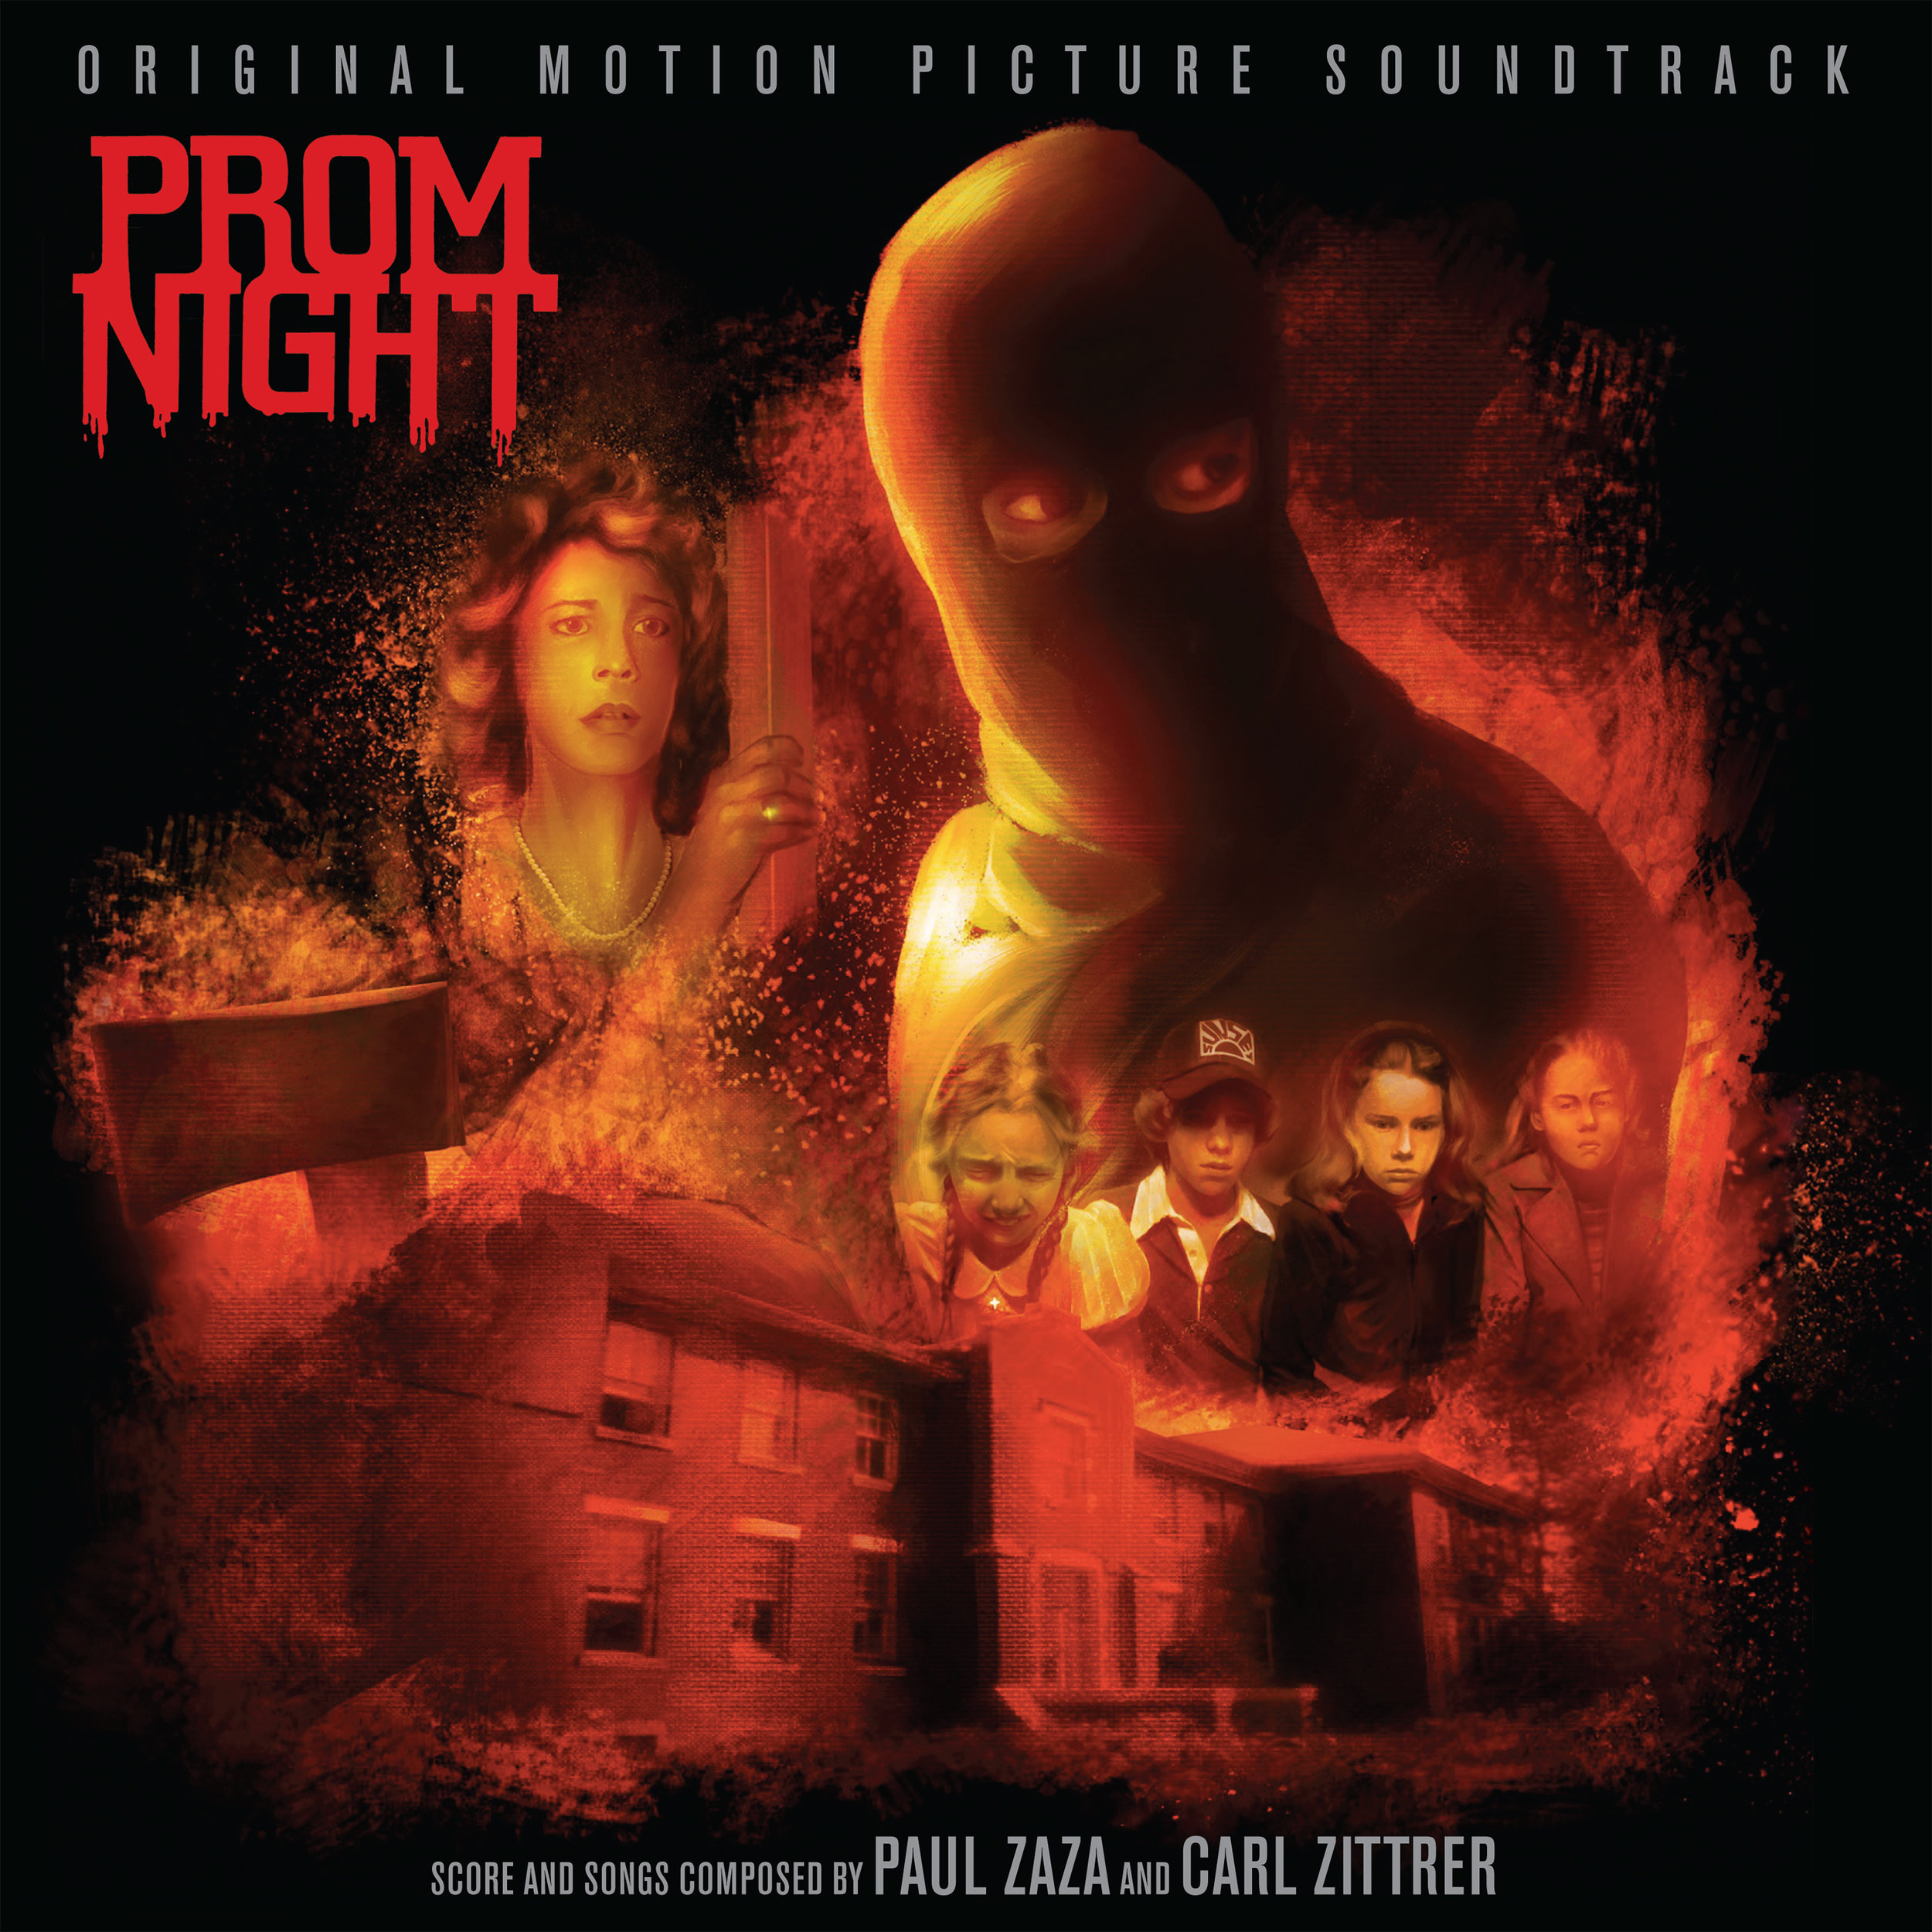 Prom-Night-Soundtrack-Cover.jpg